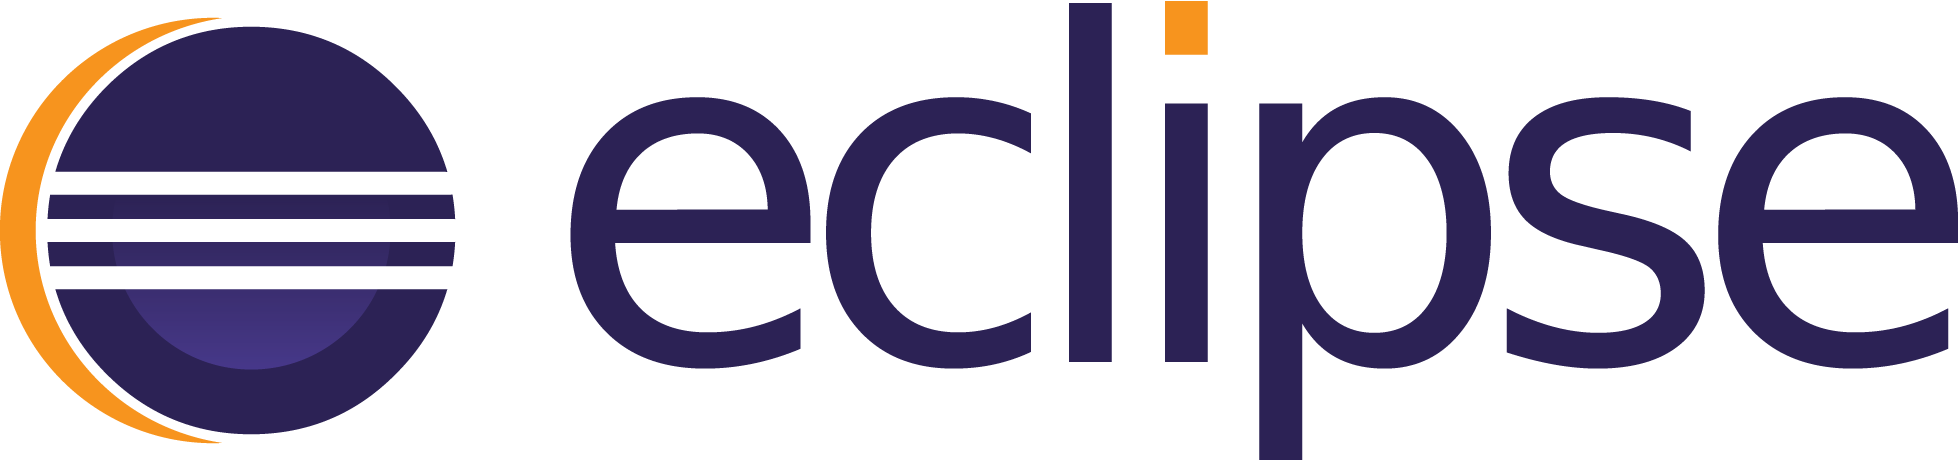 eclipse_logo_colour